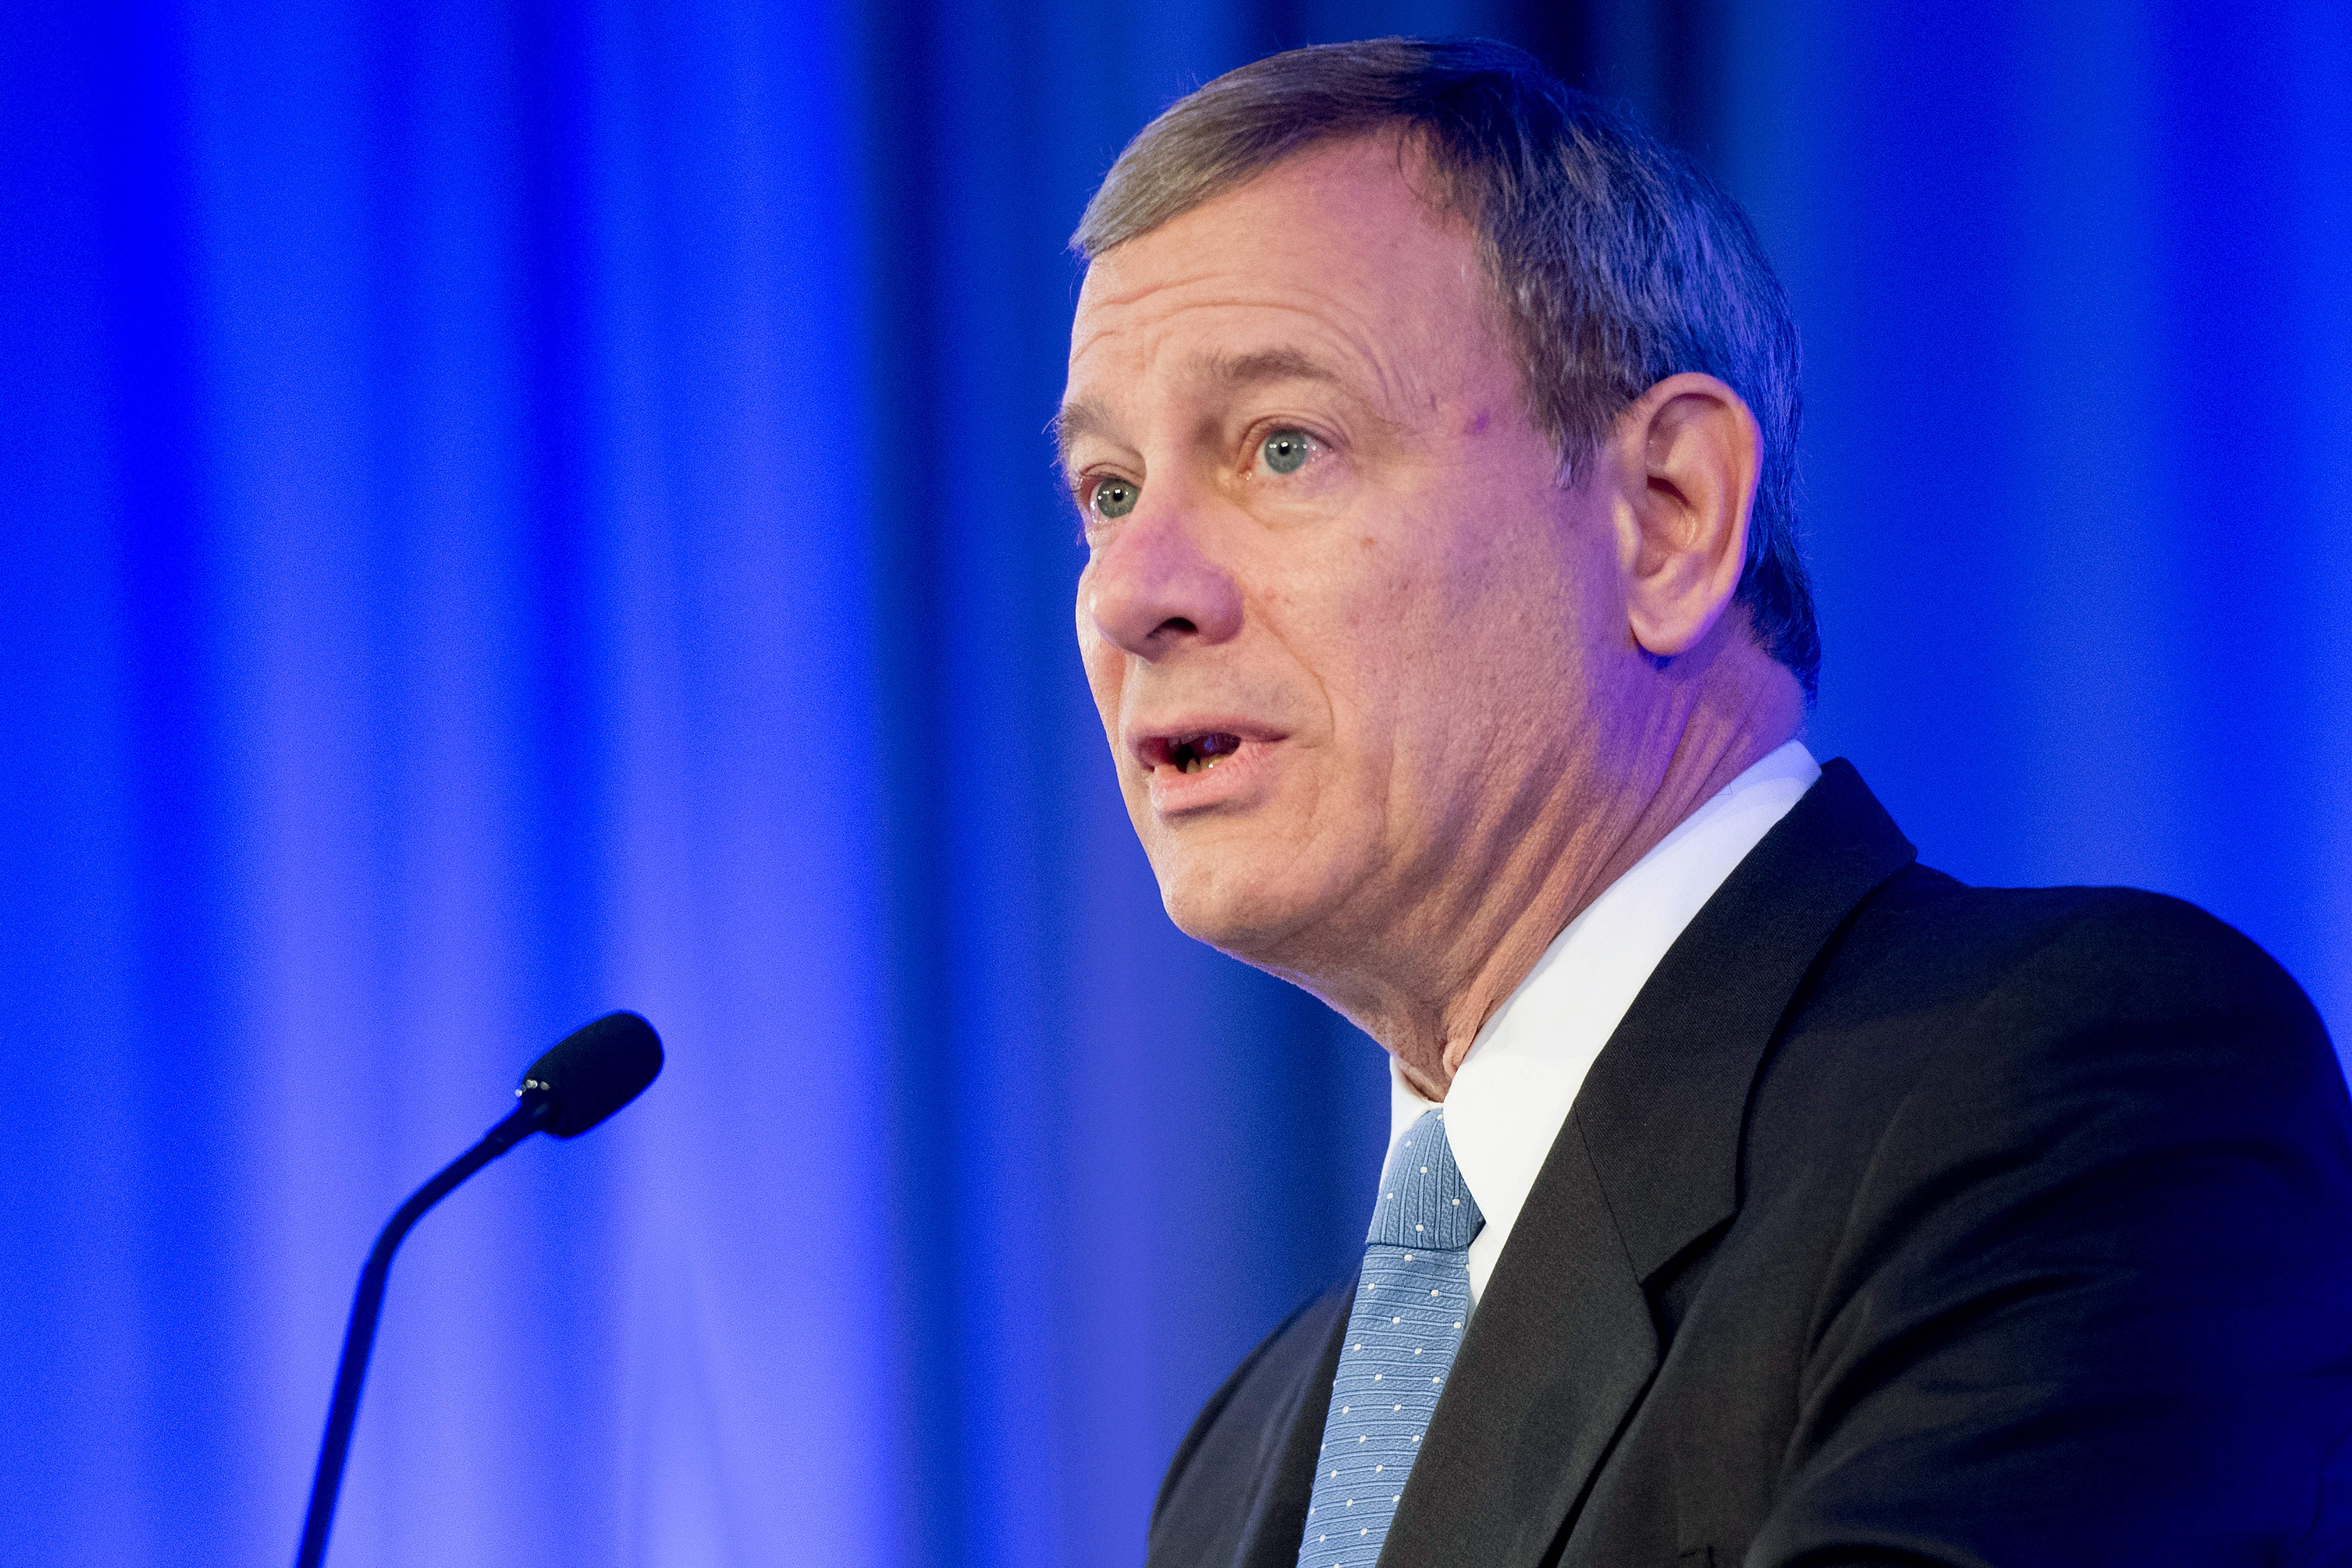 Chief Justice John Roberts speaks at an American Law Institute event honoring Justice Ruth Bader Ginsburg on May 14, 2018. (Jim Watson/AFP/Getty Images)